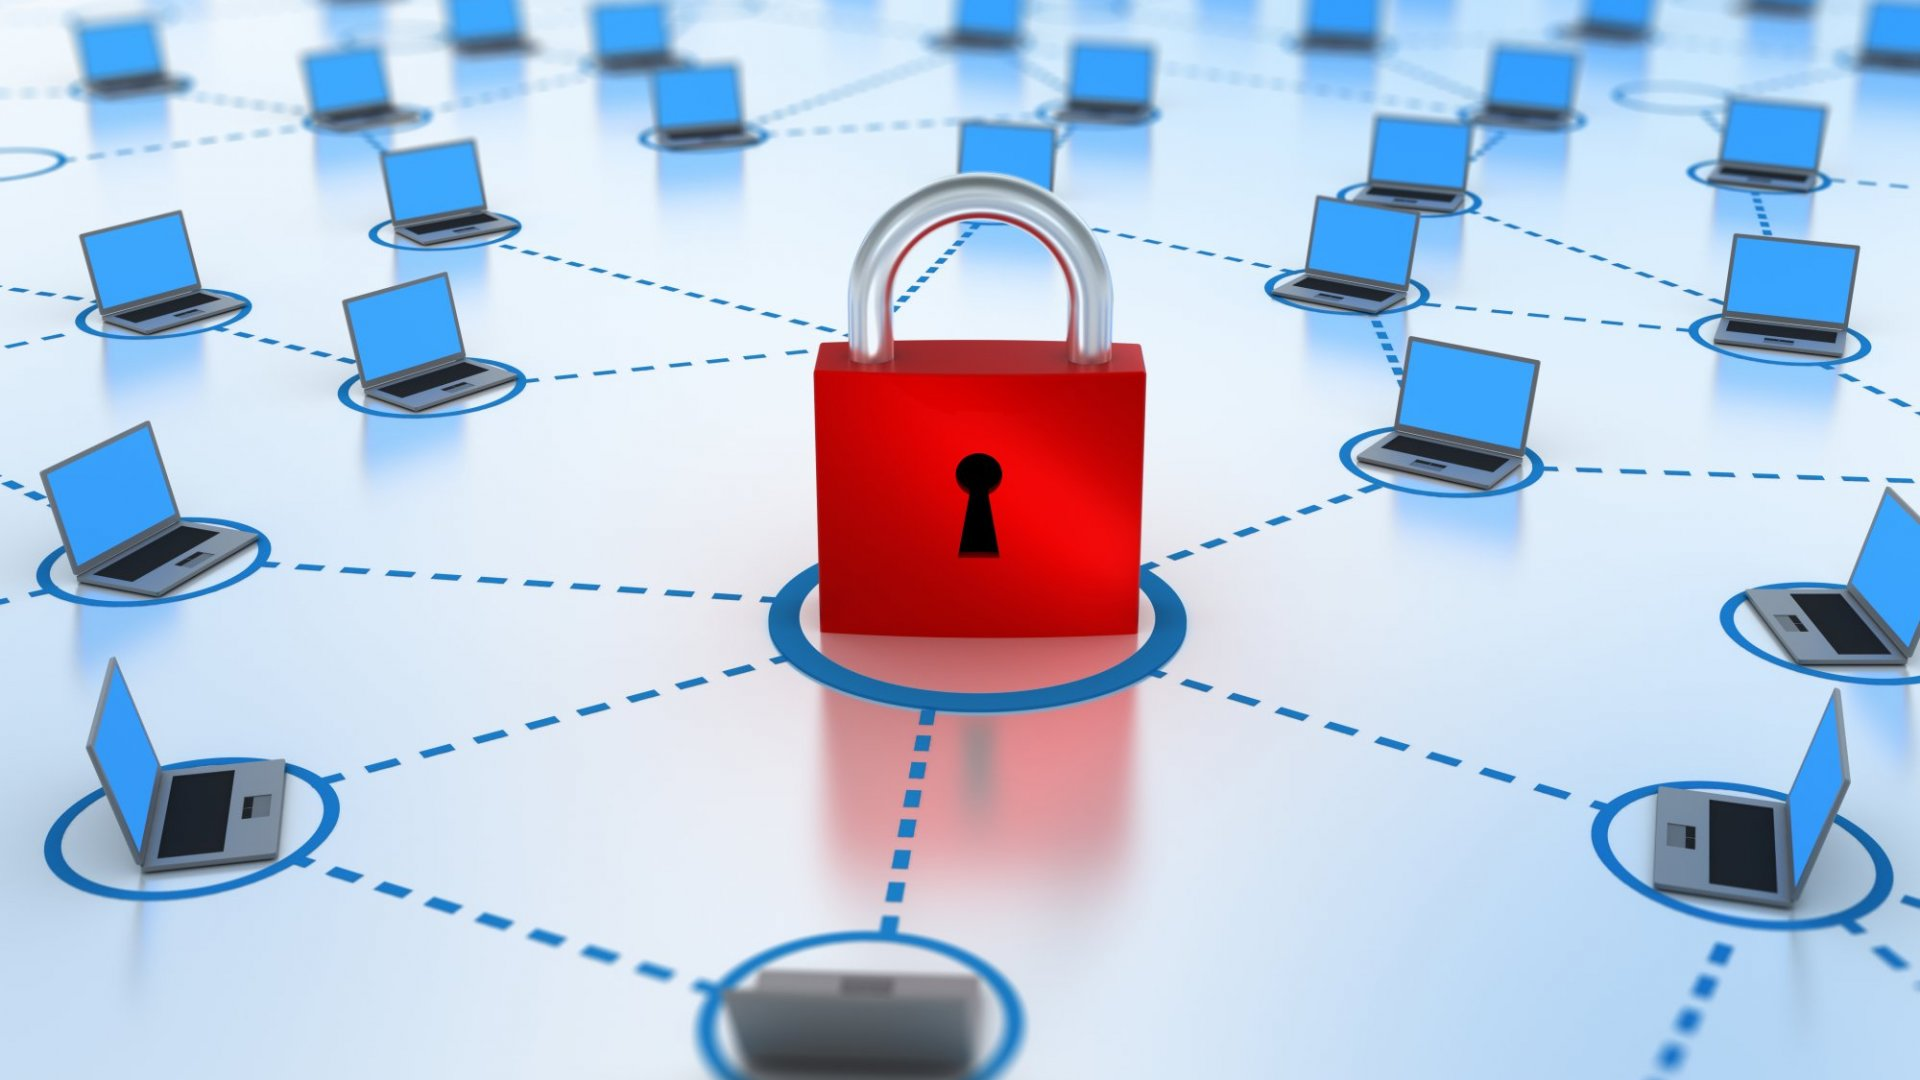 Small Business Owners, Beware! Your Biggest Cybersecurity Threat Could Be Right Under Your Nose